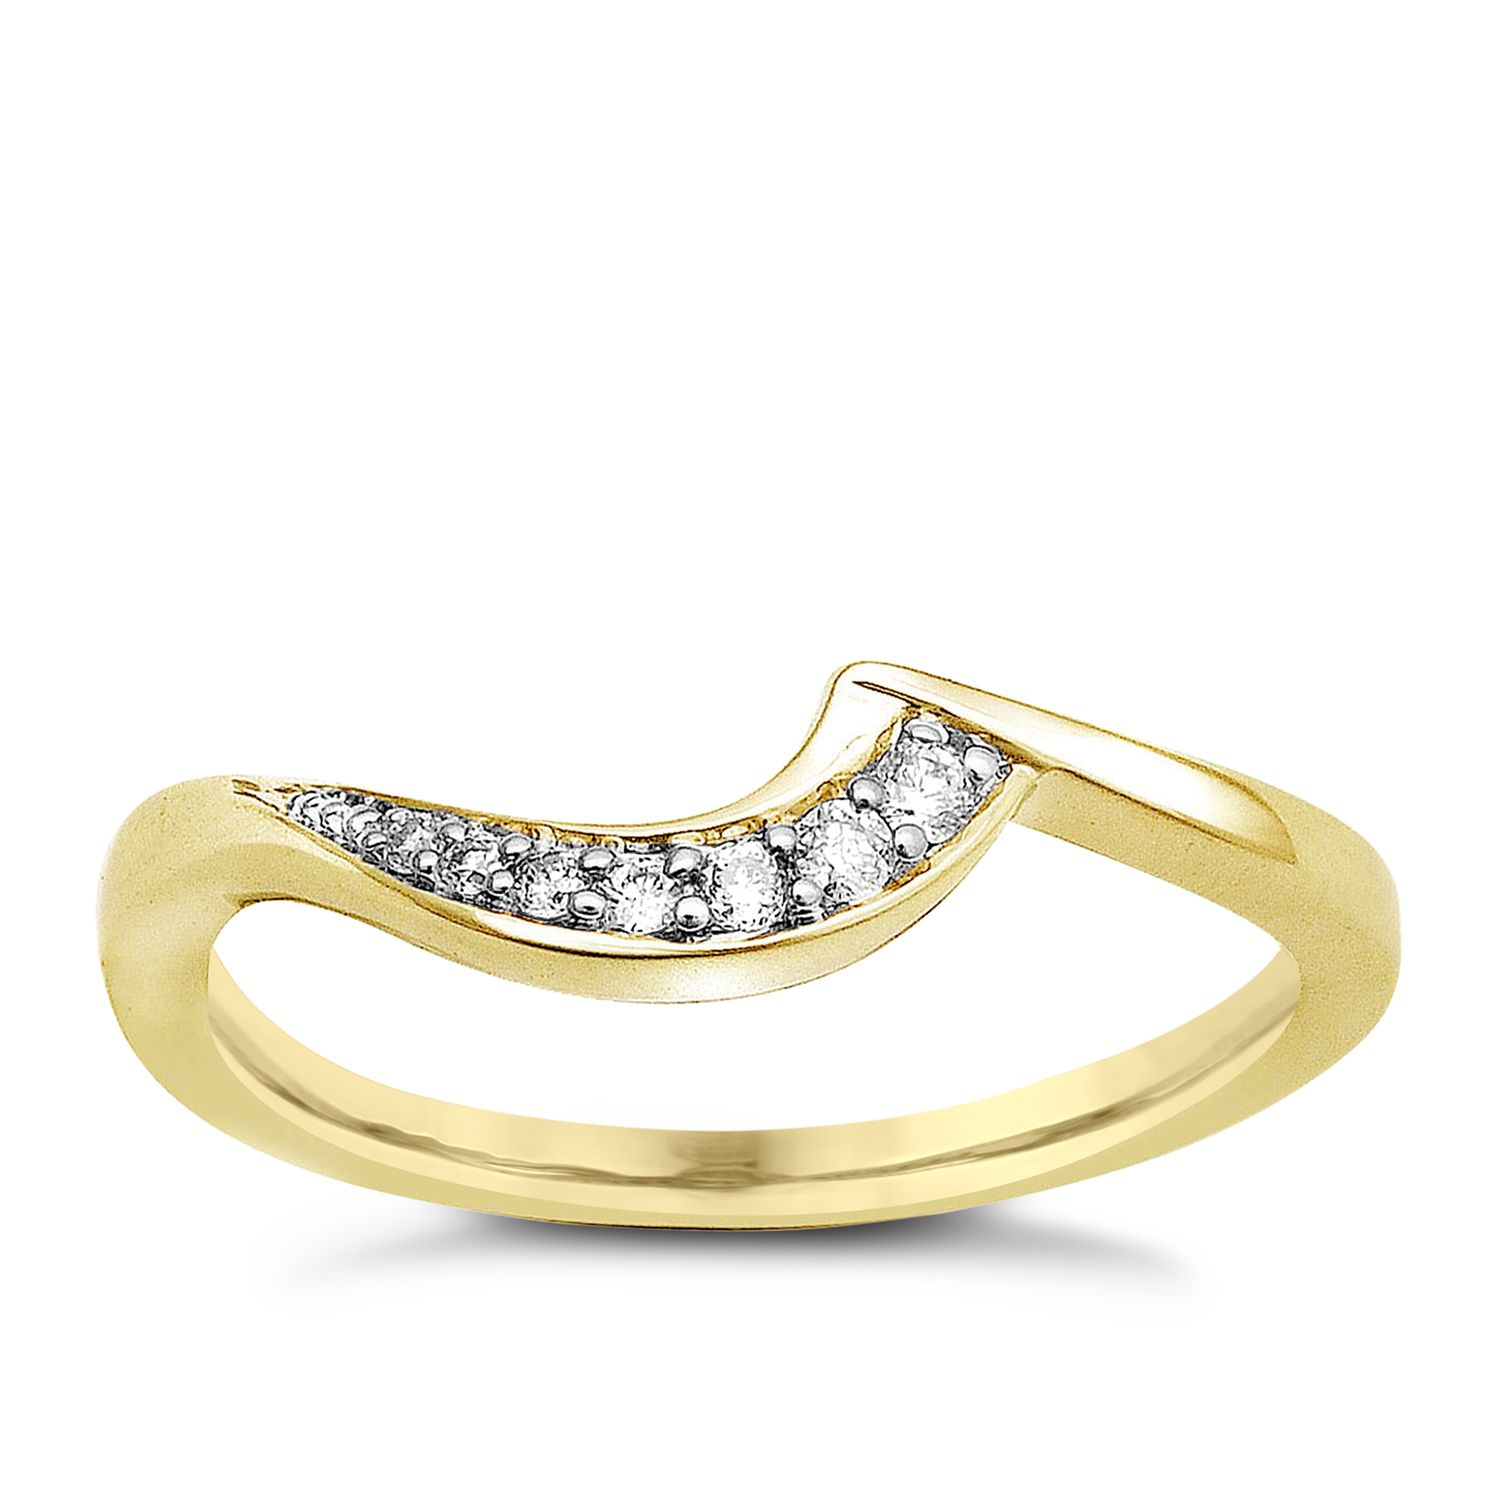 Perfect Fit 9ct Yellow Gold & Diamond Eternity Ring - Product number 9439501